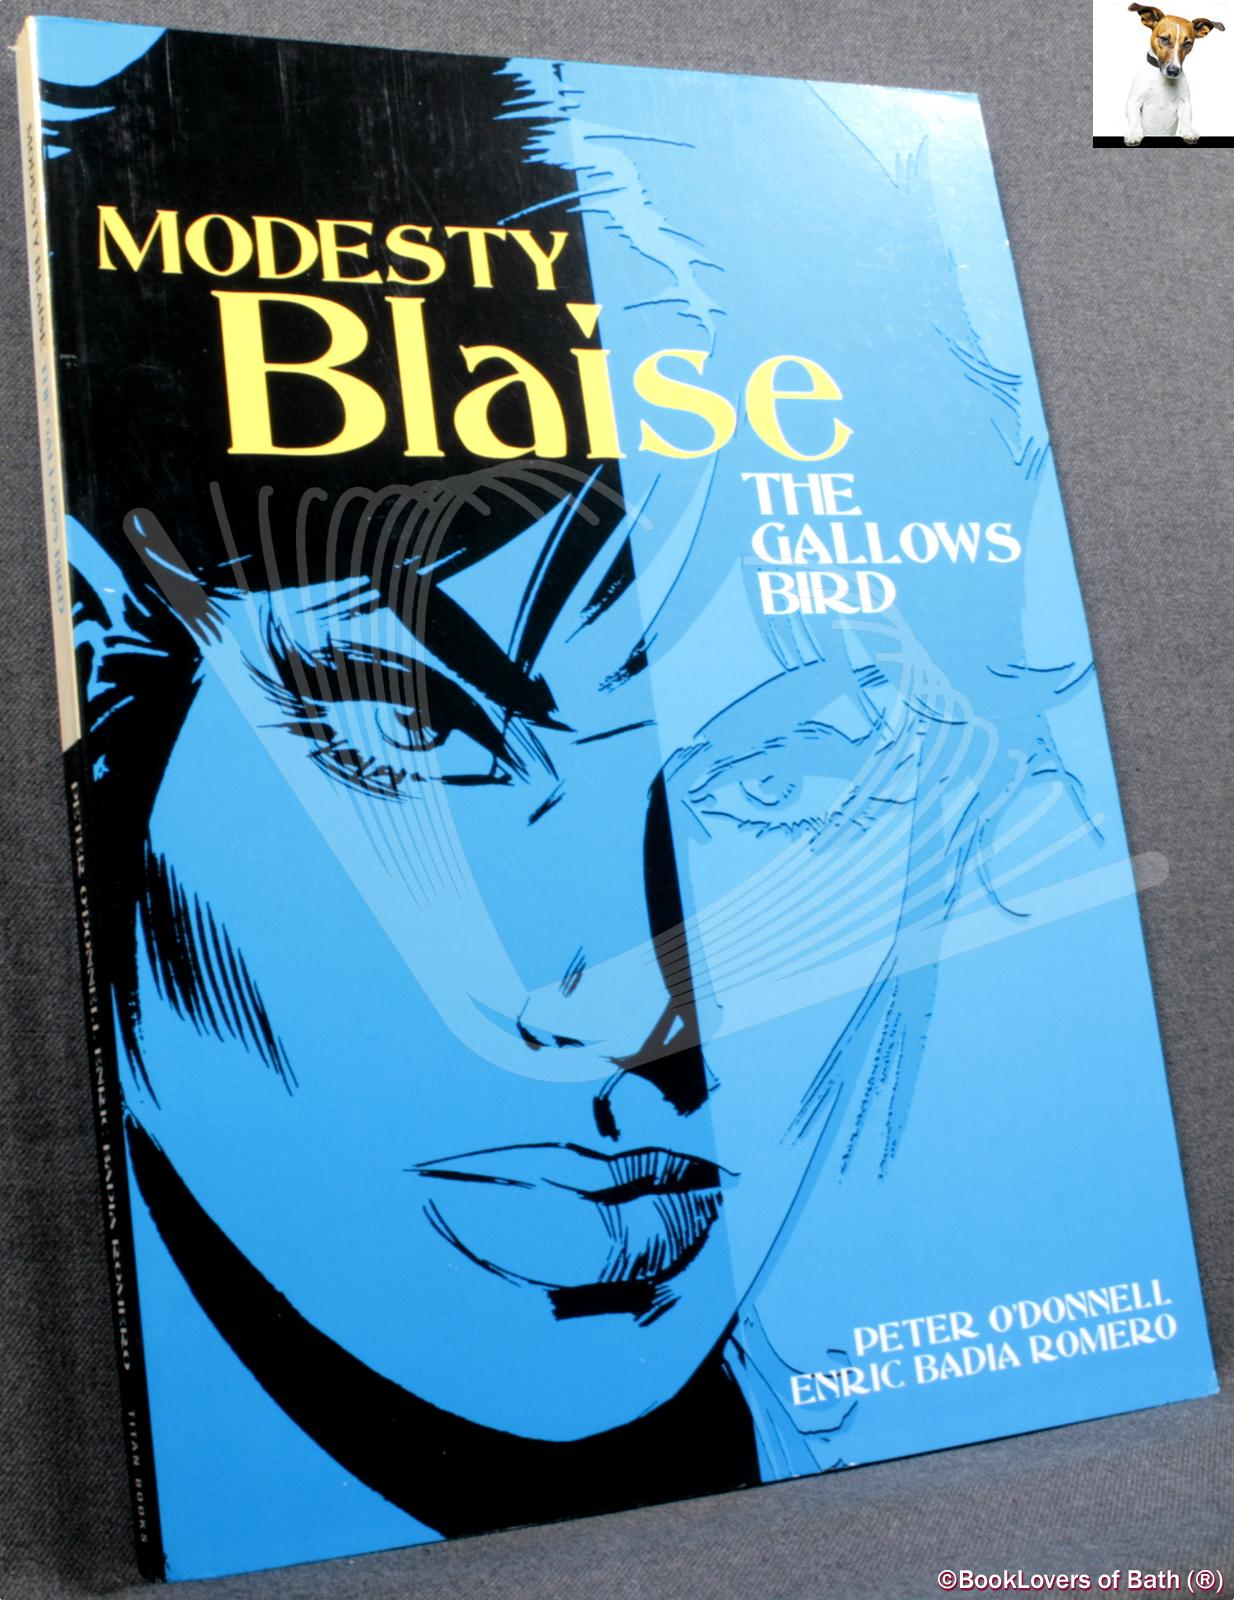 Modesty Blaise: The Gallows Bird also featuring the Bluebeard Affair, the Wicked Gnomes and The Iron God - Peter O'Donnell